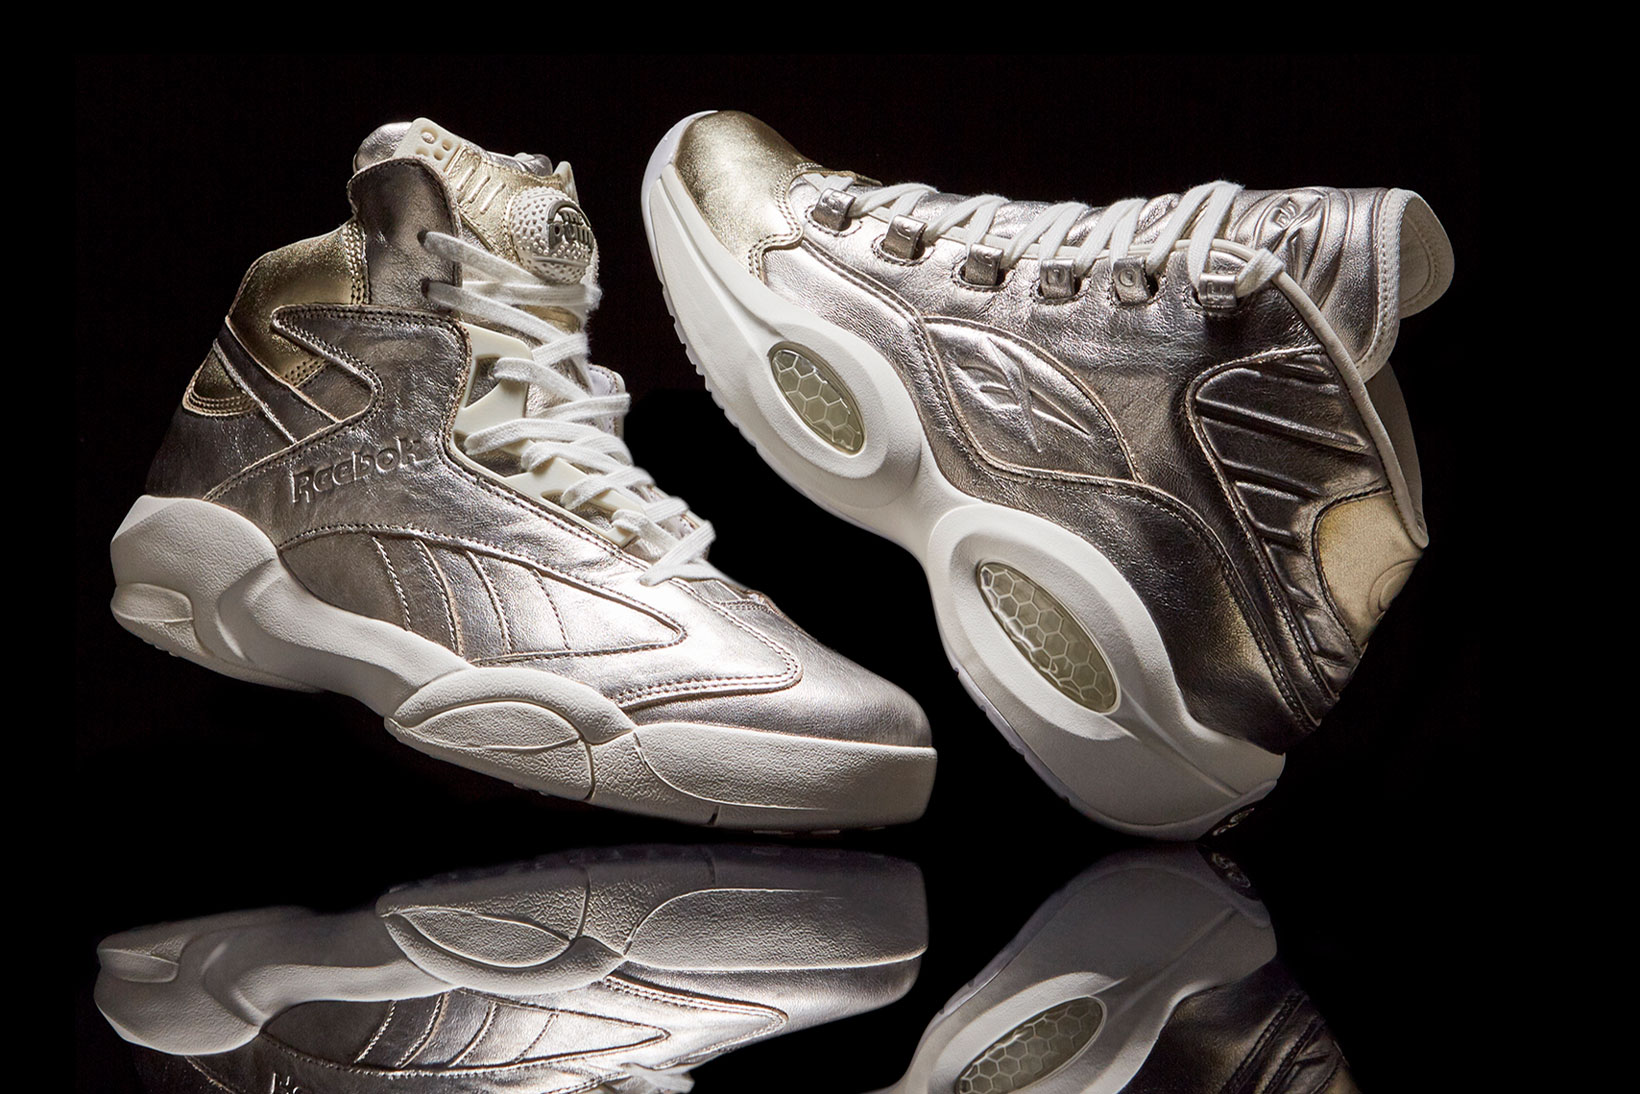 "Reebok Classics Gives the Limited Edition ""16 Hoop Hall"" Pack a Sleek Metallic Treatment"